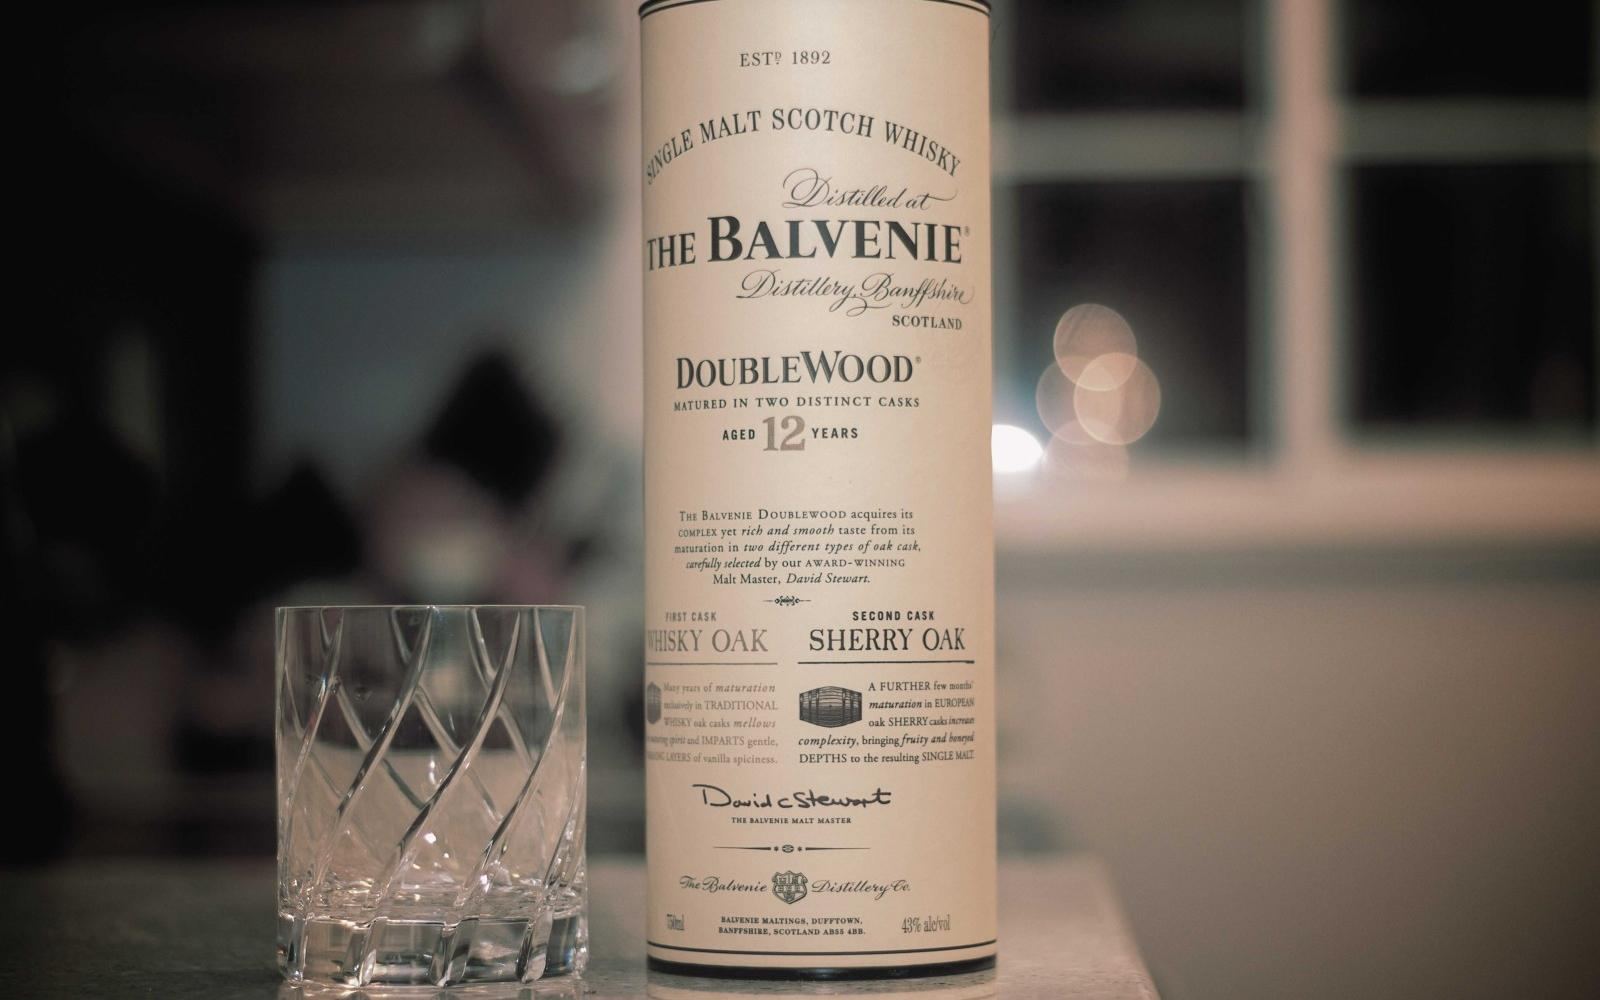 The Balvenie Doublewood Aged 12 Years - Photo: Flickr/ Michael Bentley